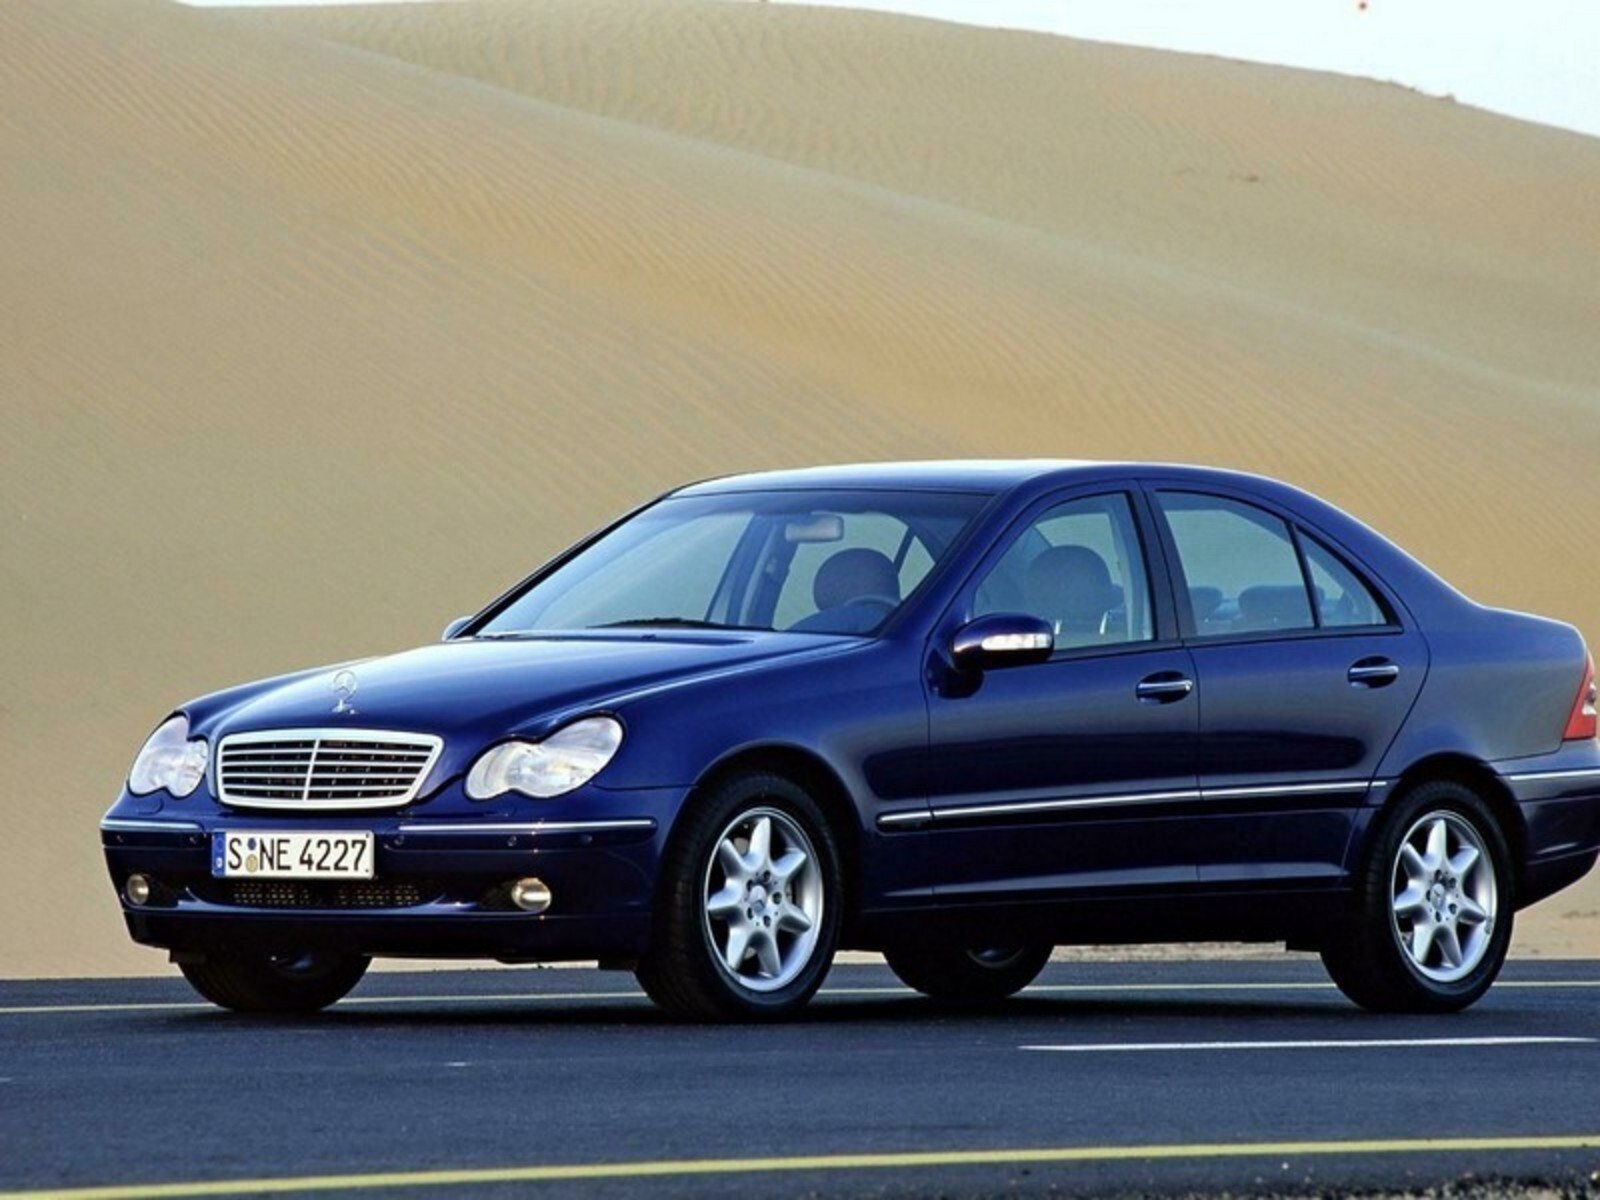 2004 mercedes c class picture 25835 car review top speed. Black Bedroom Furniture Sets. Home Design Ideas